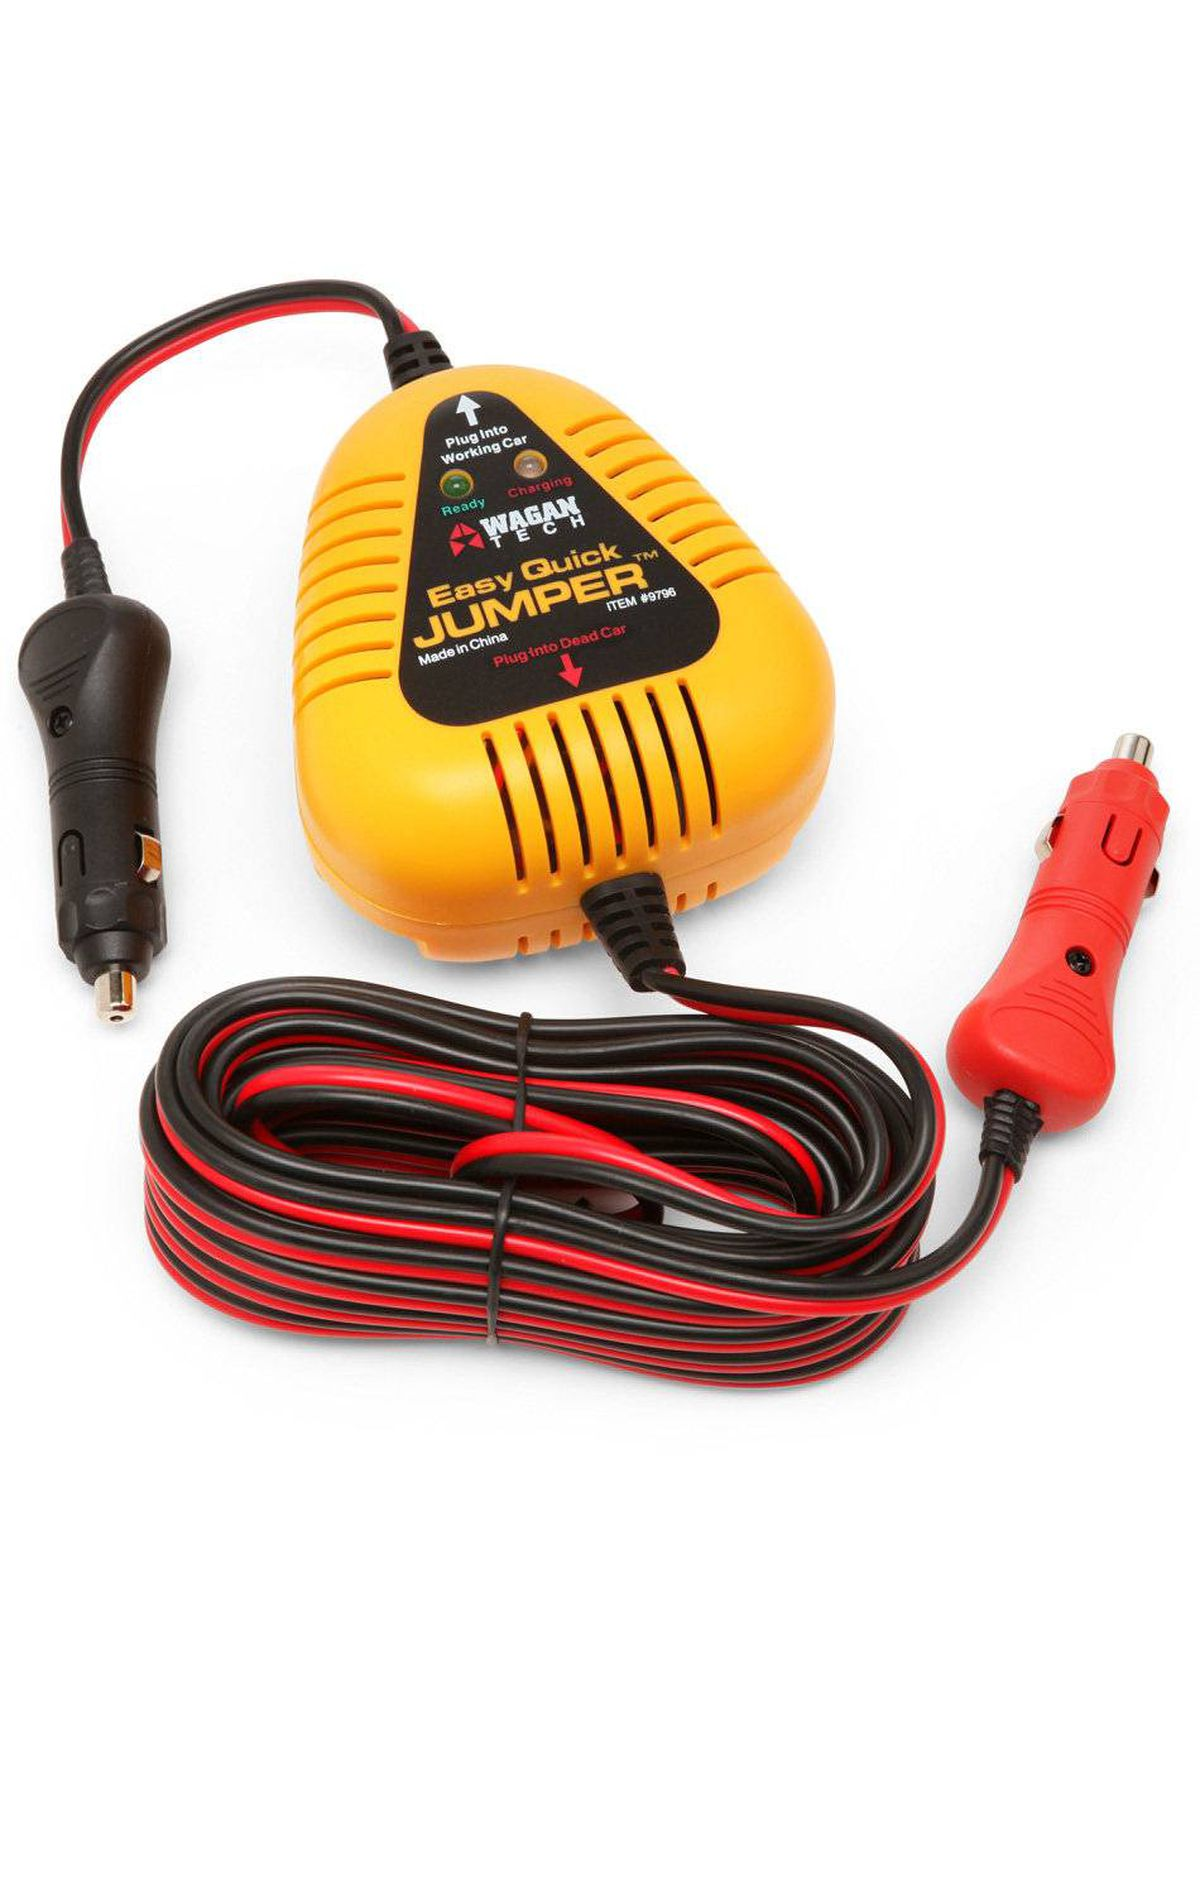 Closed-hood car jump-starter Forget fumbling around inside the hood and praying you connected your wires right when trying to jump-start your car. Just connect the Wagan Easy Quick Jumper via both cars' cigarette lighter outlets, wait 5 to 10 minutes and when the light goes green you're ready to start up. Comes with 18-foot long cord. ($24.99 at Thinkgeek.com)